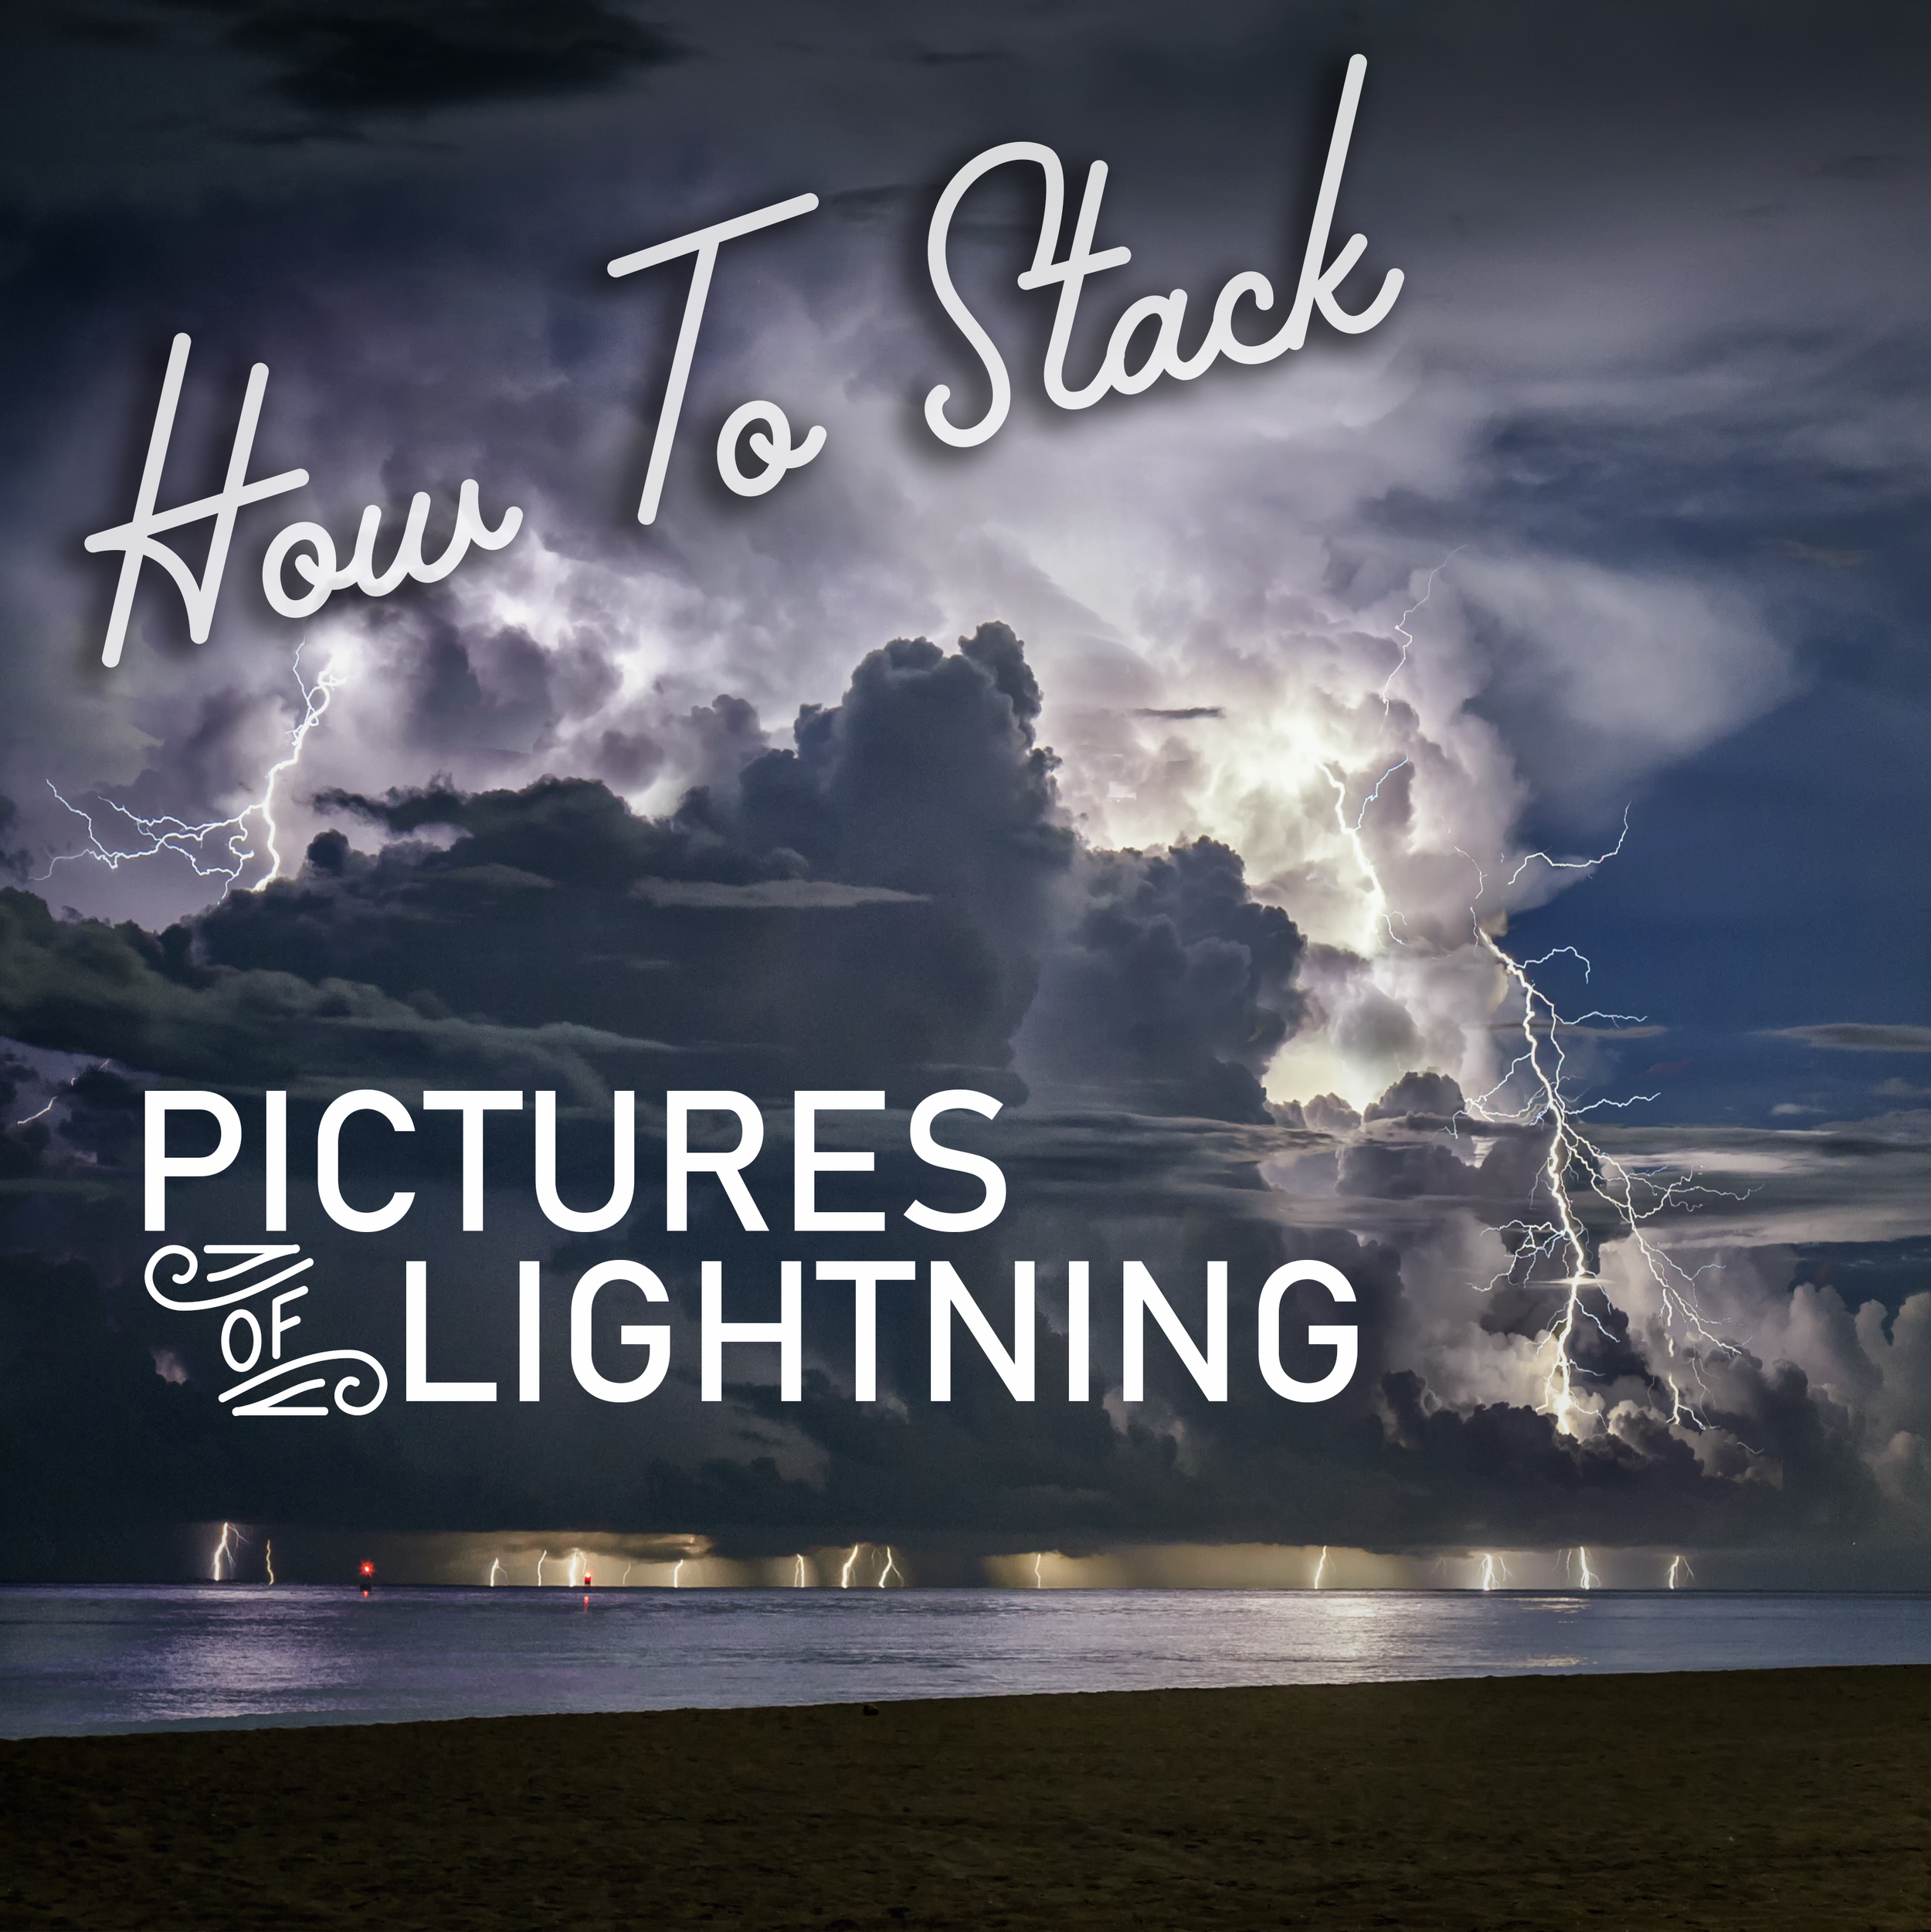 how to stack layer composite lightning lightening pictures photos photographs images exposures